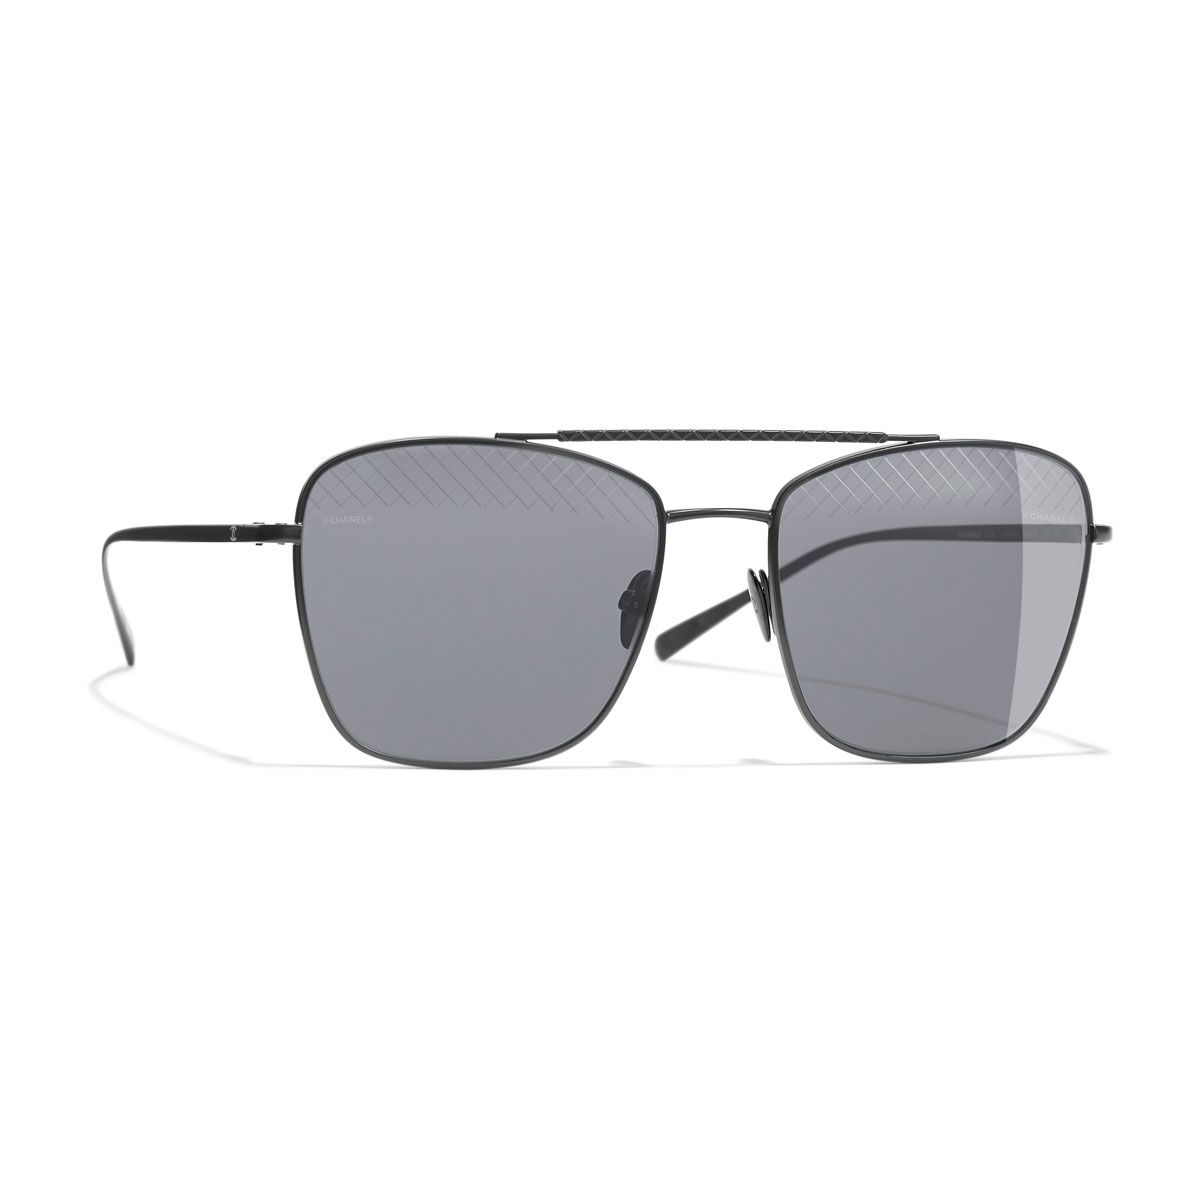 Pilot Sunglasses 240 Sunglasses